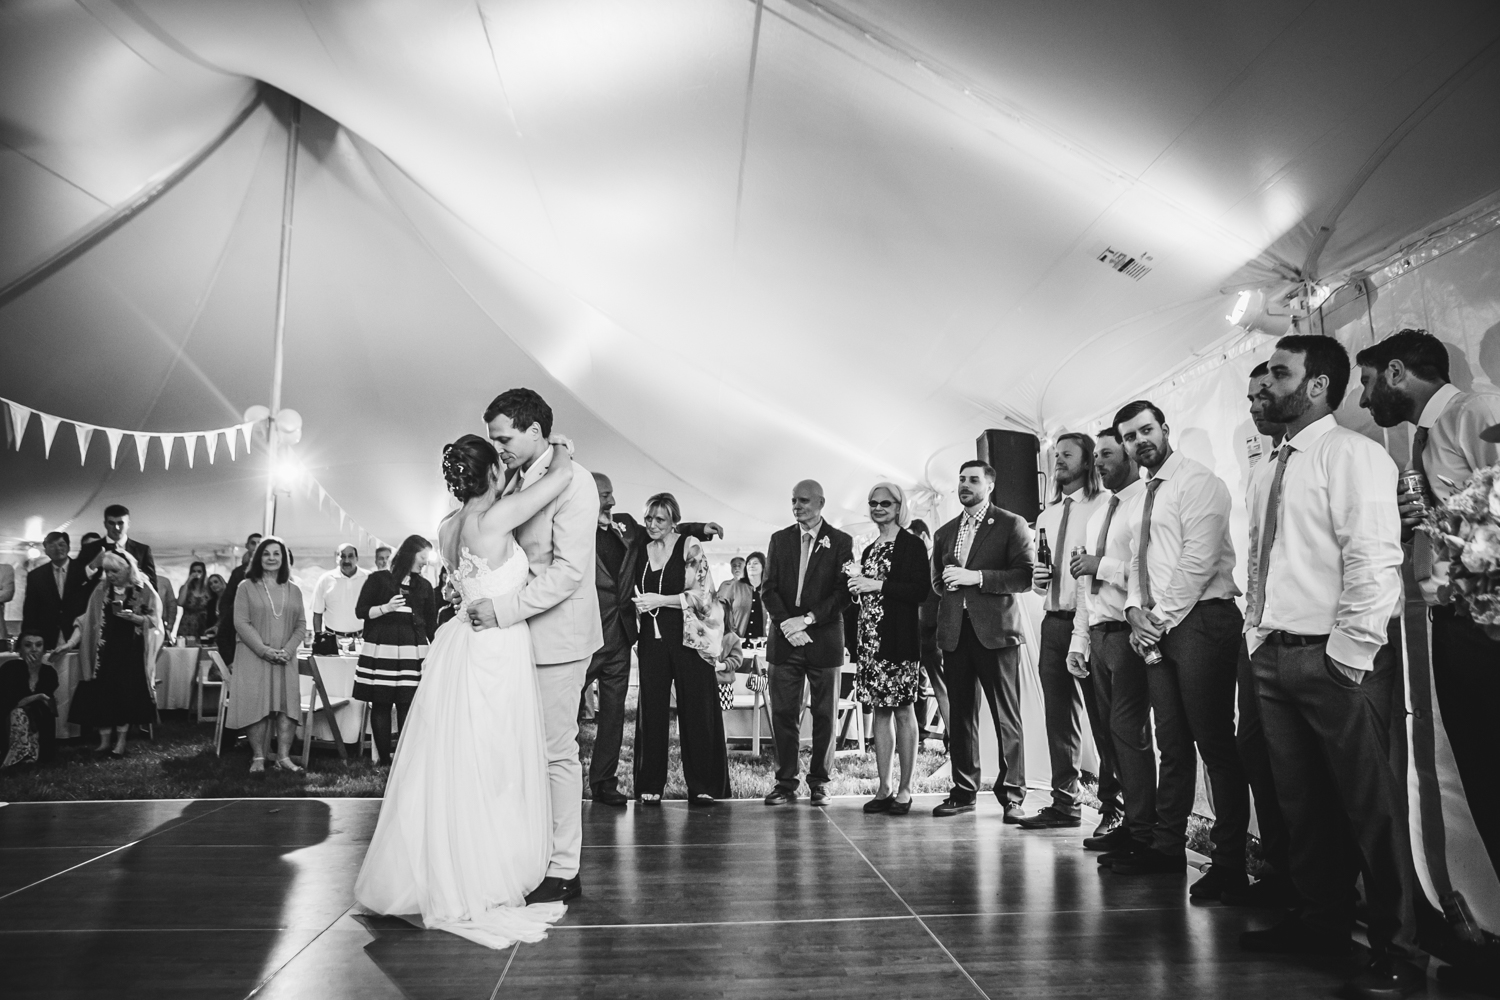 Emily Tebbetts Photography - back yard wedding gif atkinson nh confetti recessional bride and groom pizza truck -12.jpg